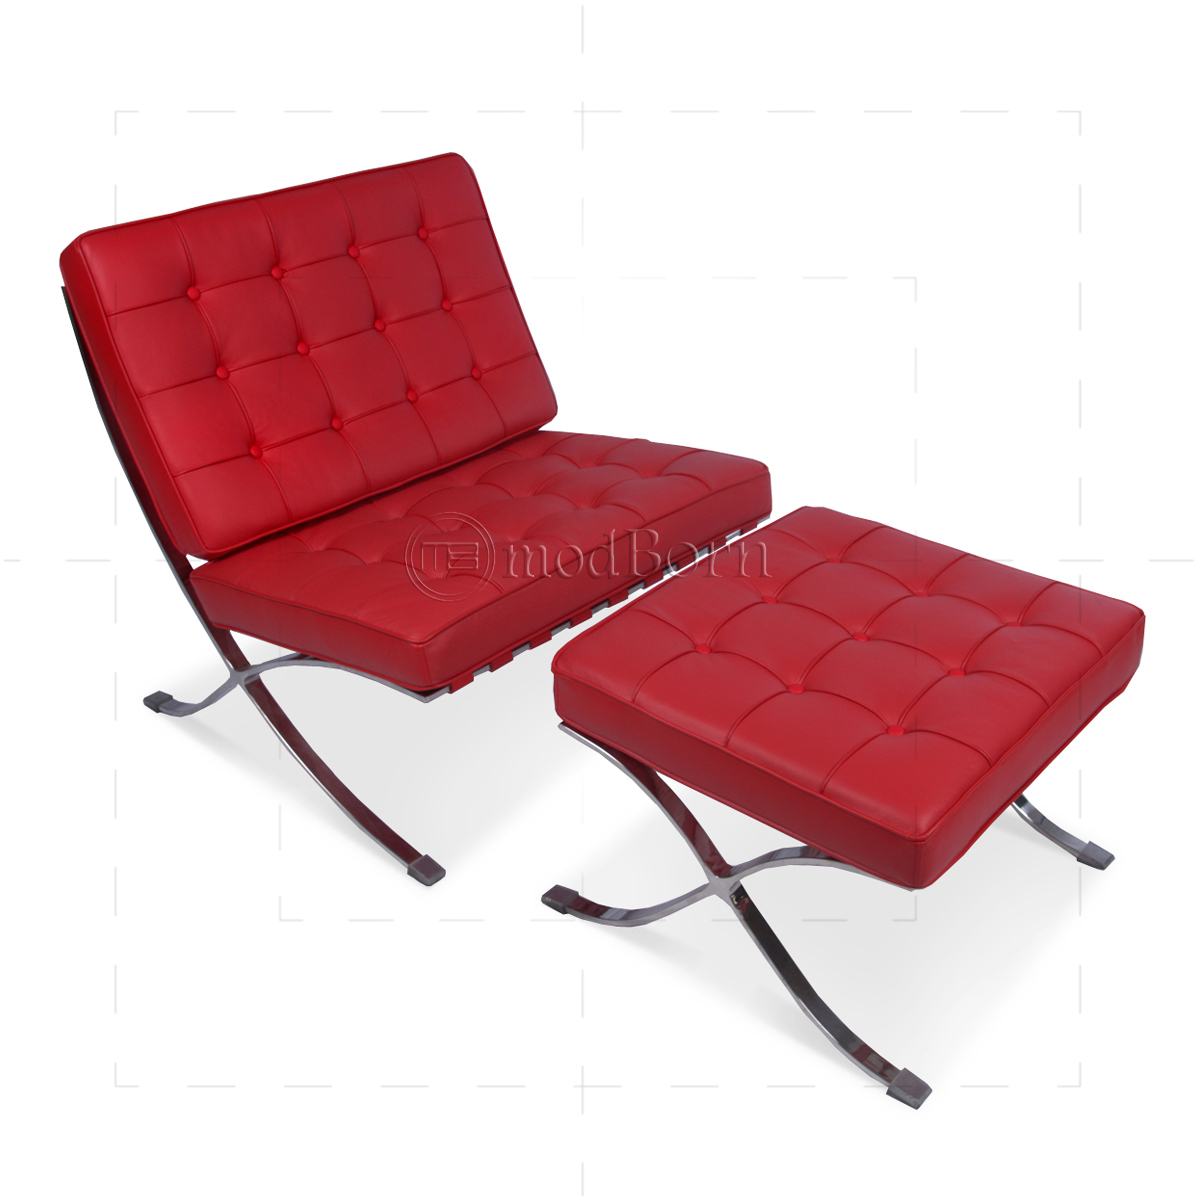 ludwig mies van der rohe barcelona style ottoman red leather. Black Bedroom Furniture Sets. Home Design Ideas